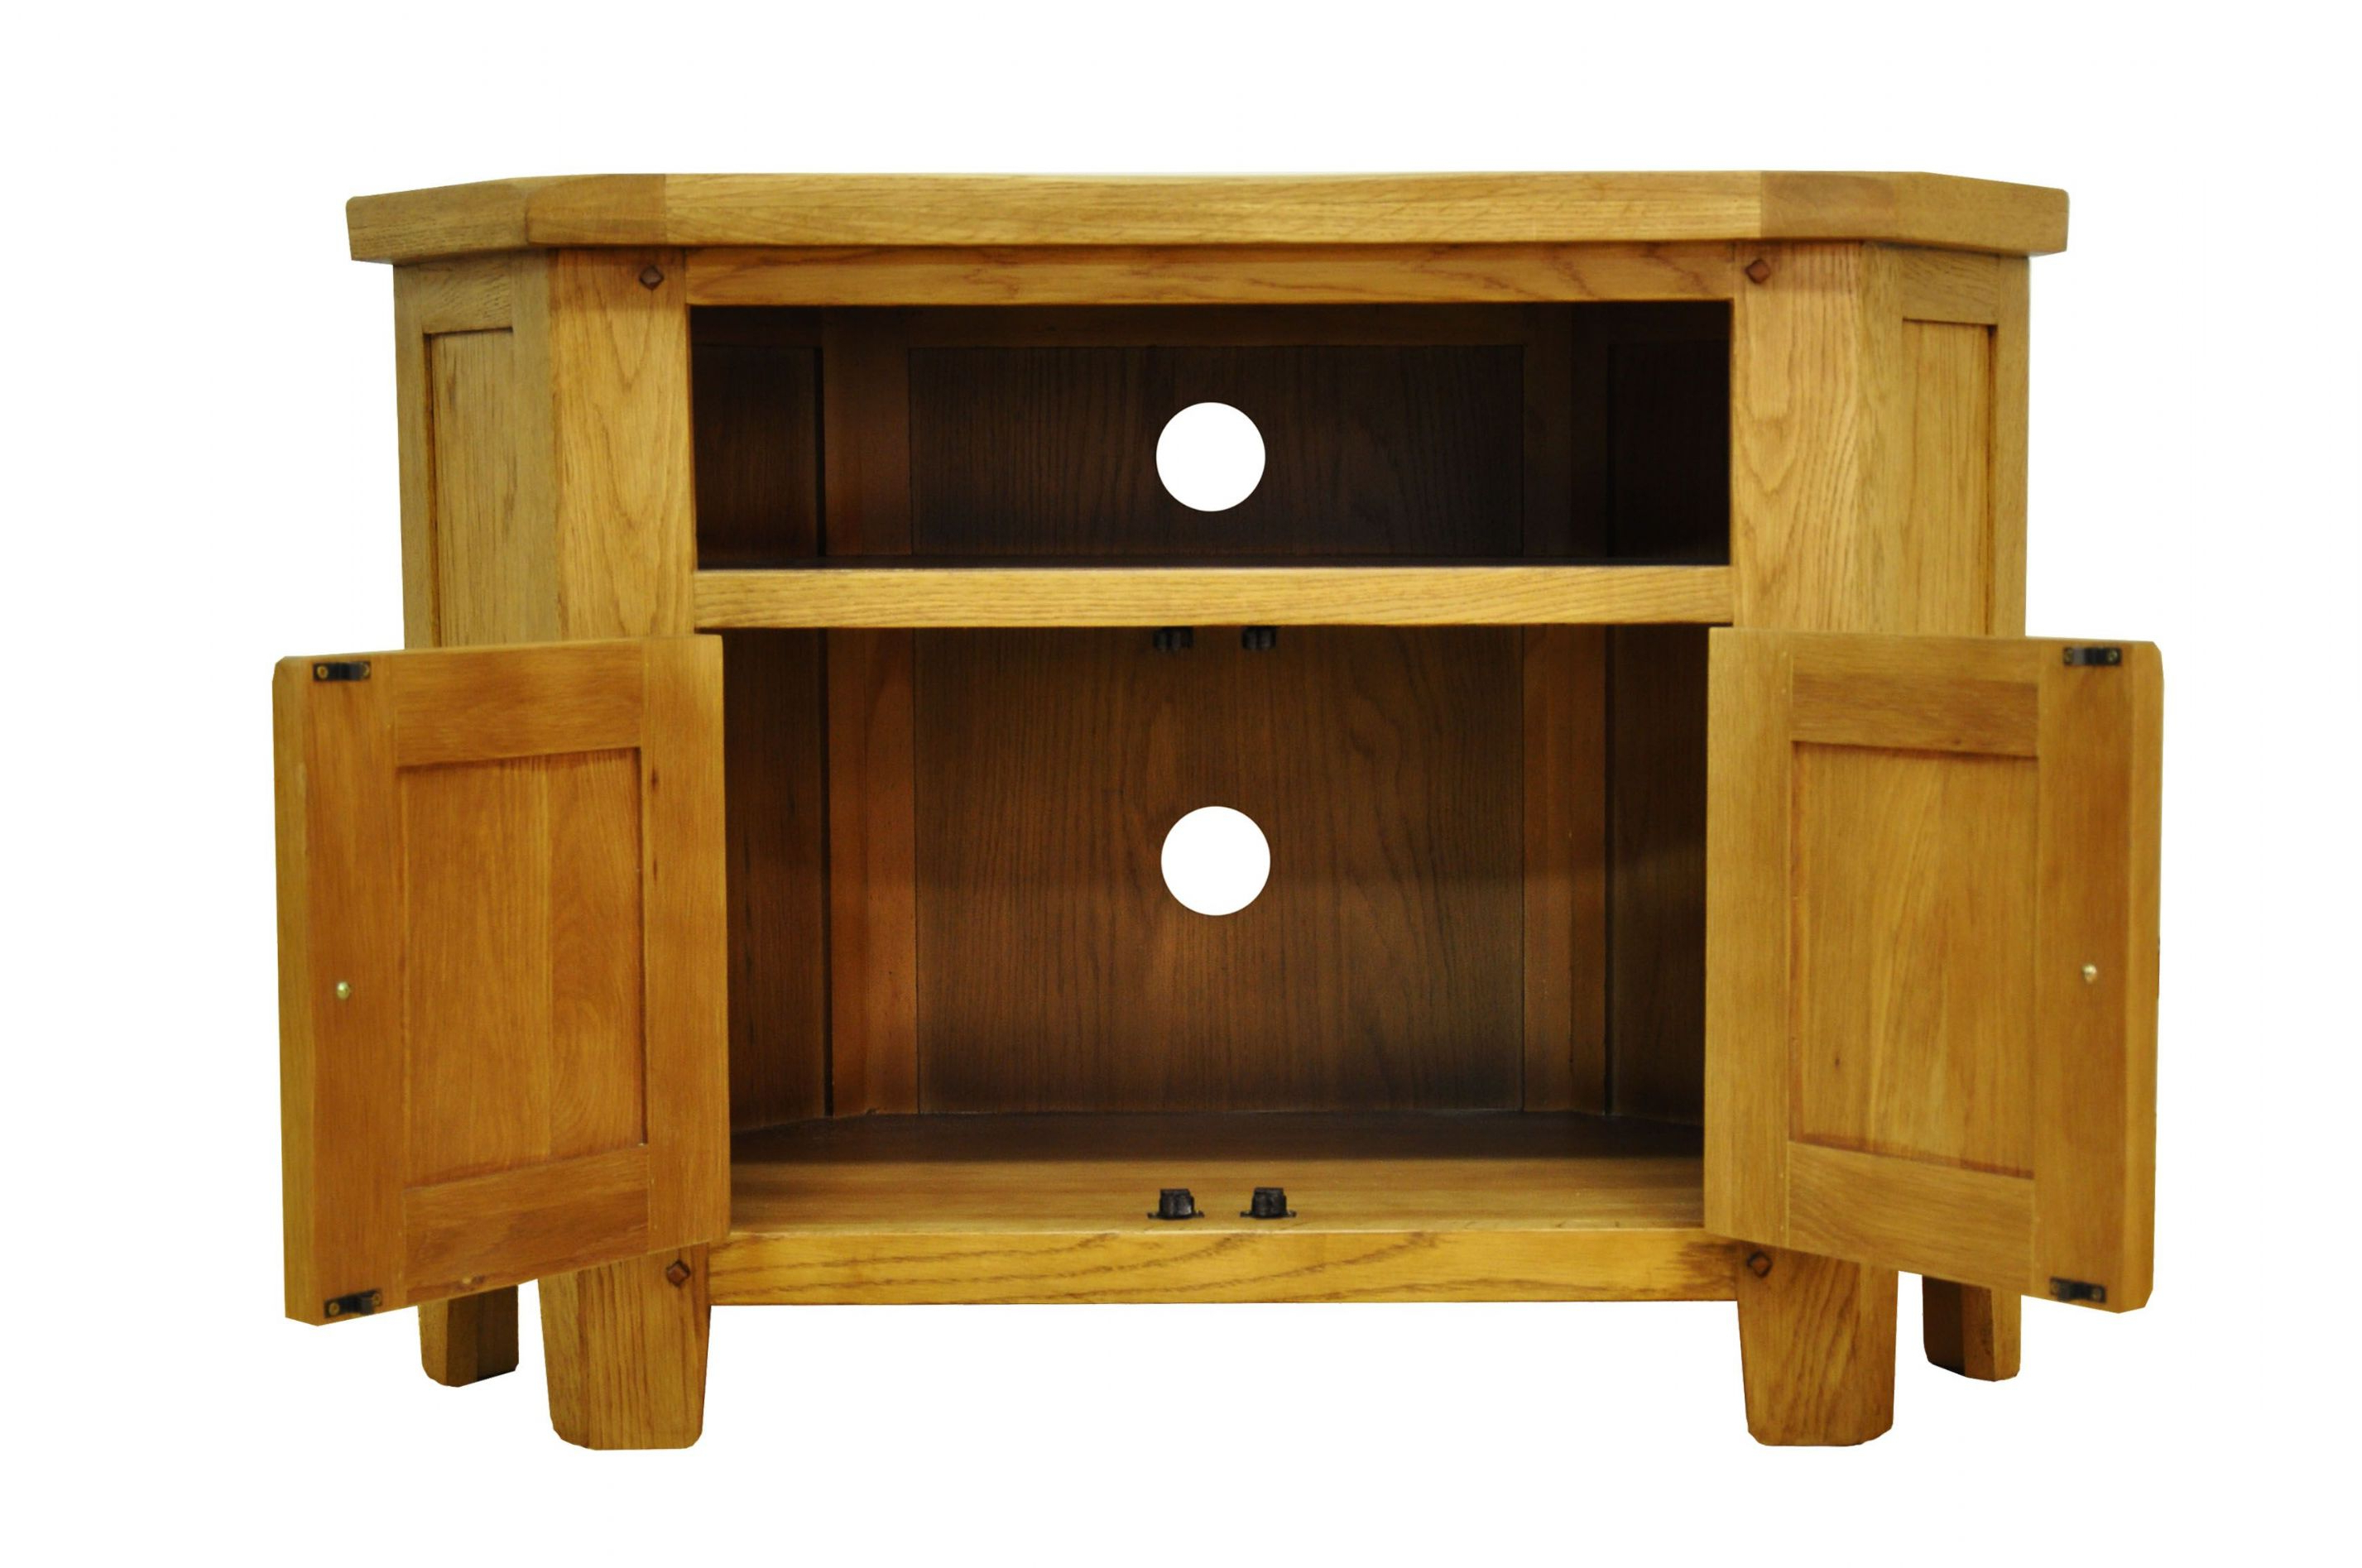 Oak Tv Stand Walmart Solid Wood Stands For Flat Screens Light Pertaining To Recent Light Oak Corner Tv Cabinets (View 13 of 20)